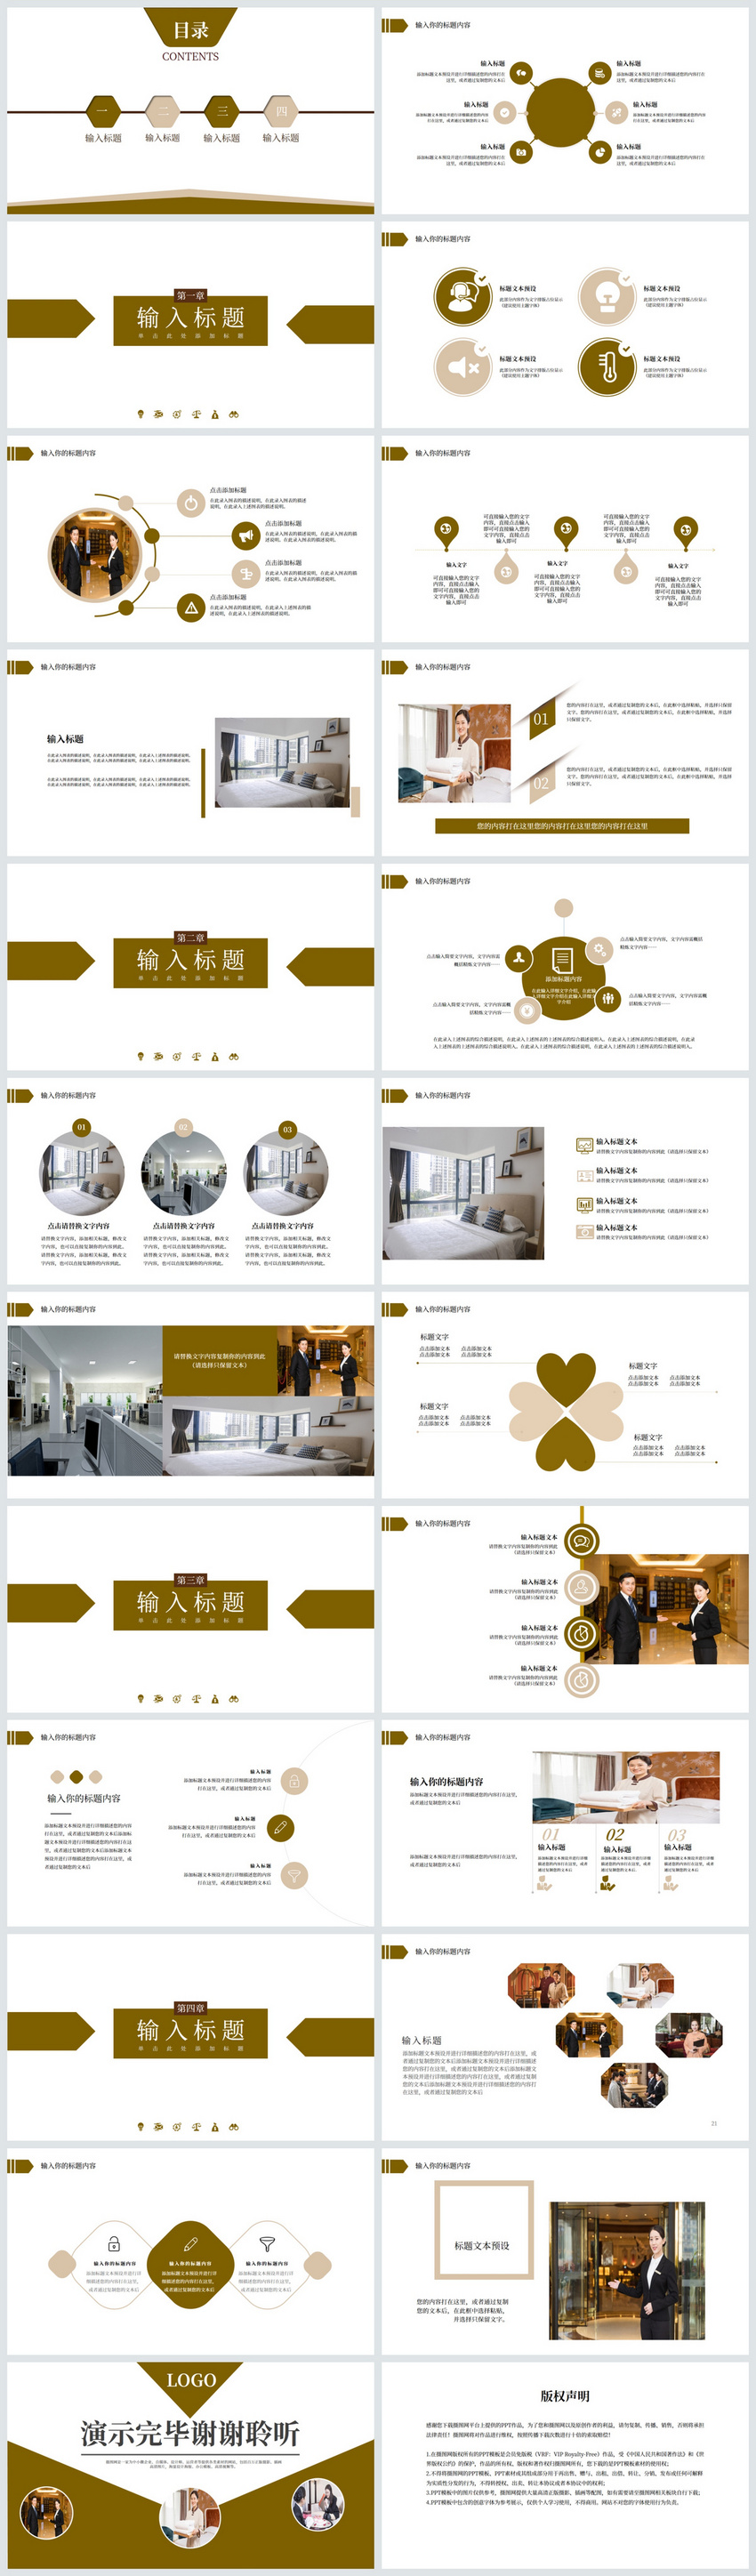 Hotel Management Ppt Template Powerpoint Templete Ppt Free Download 401429940 Lovepik Com